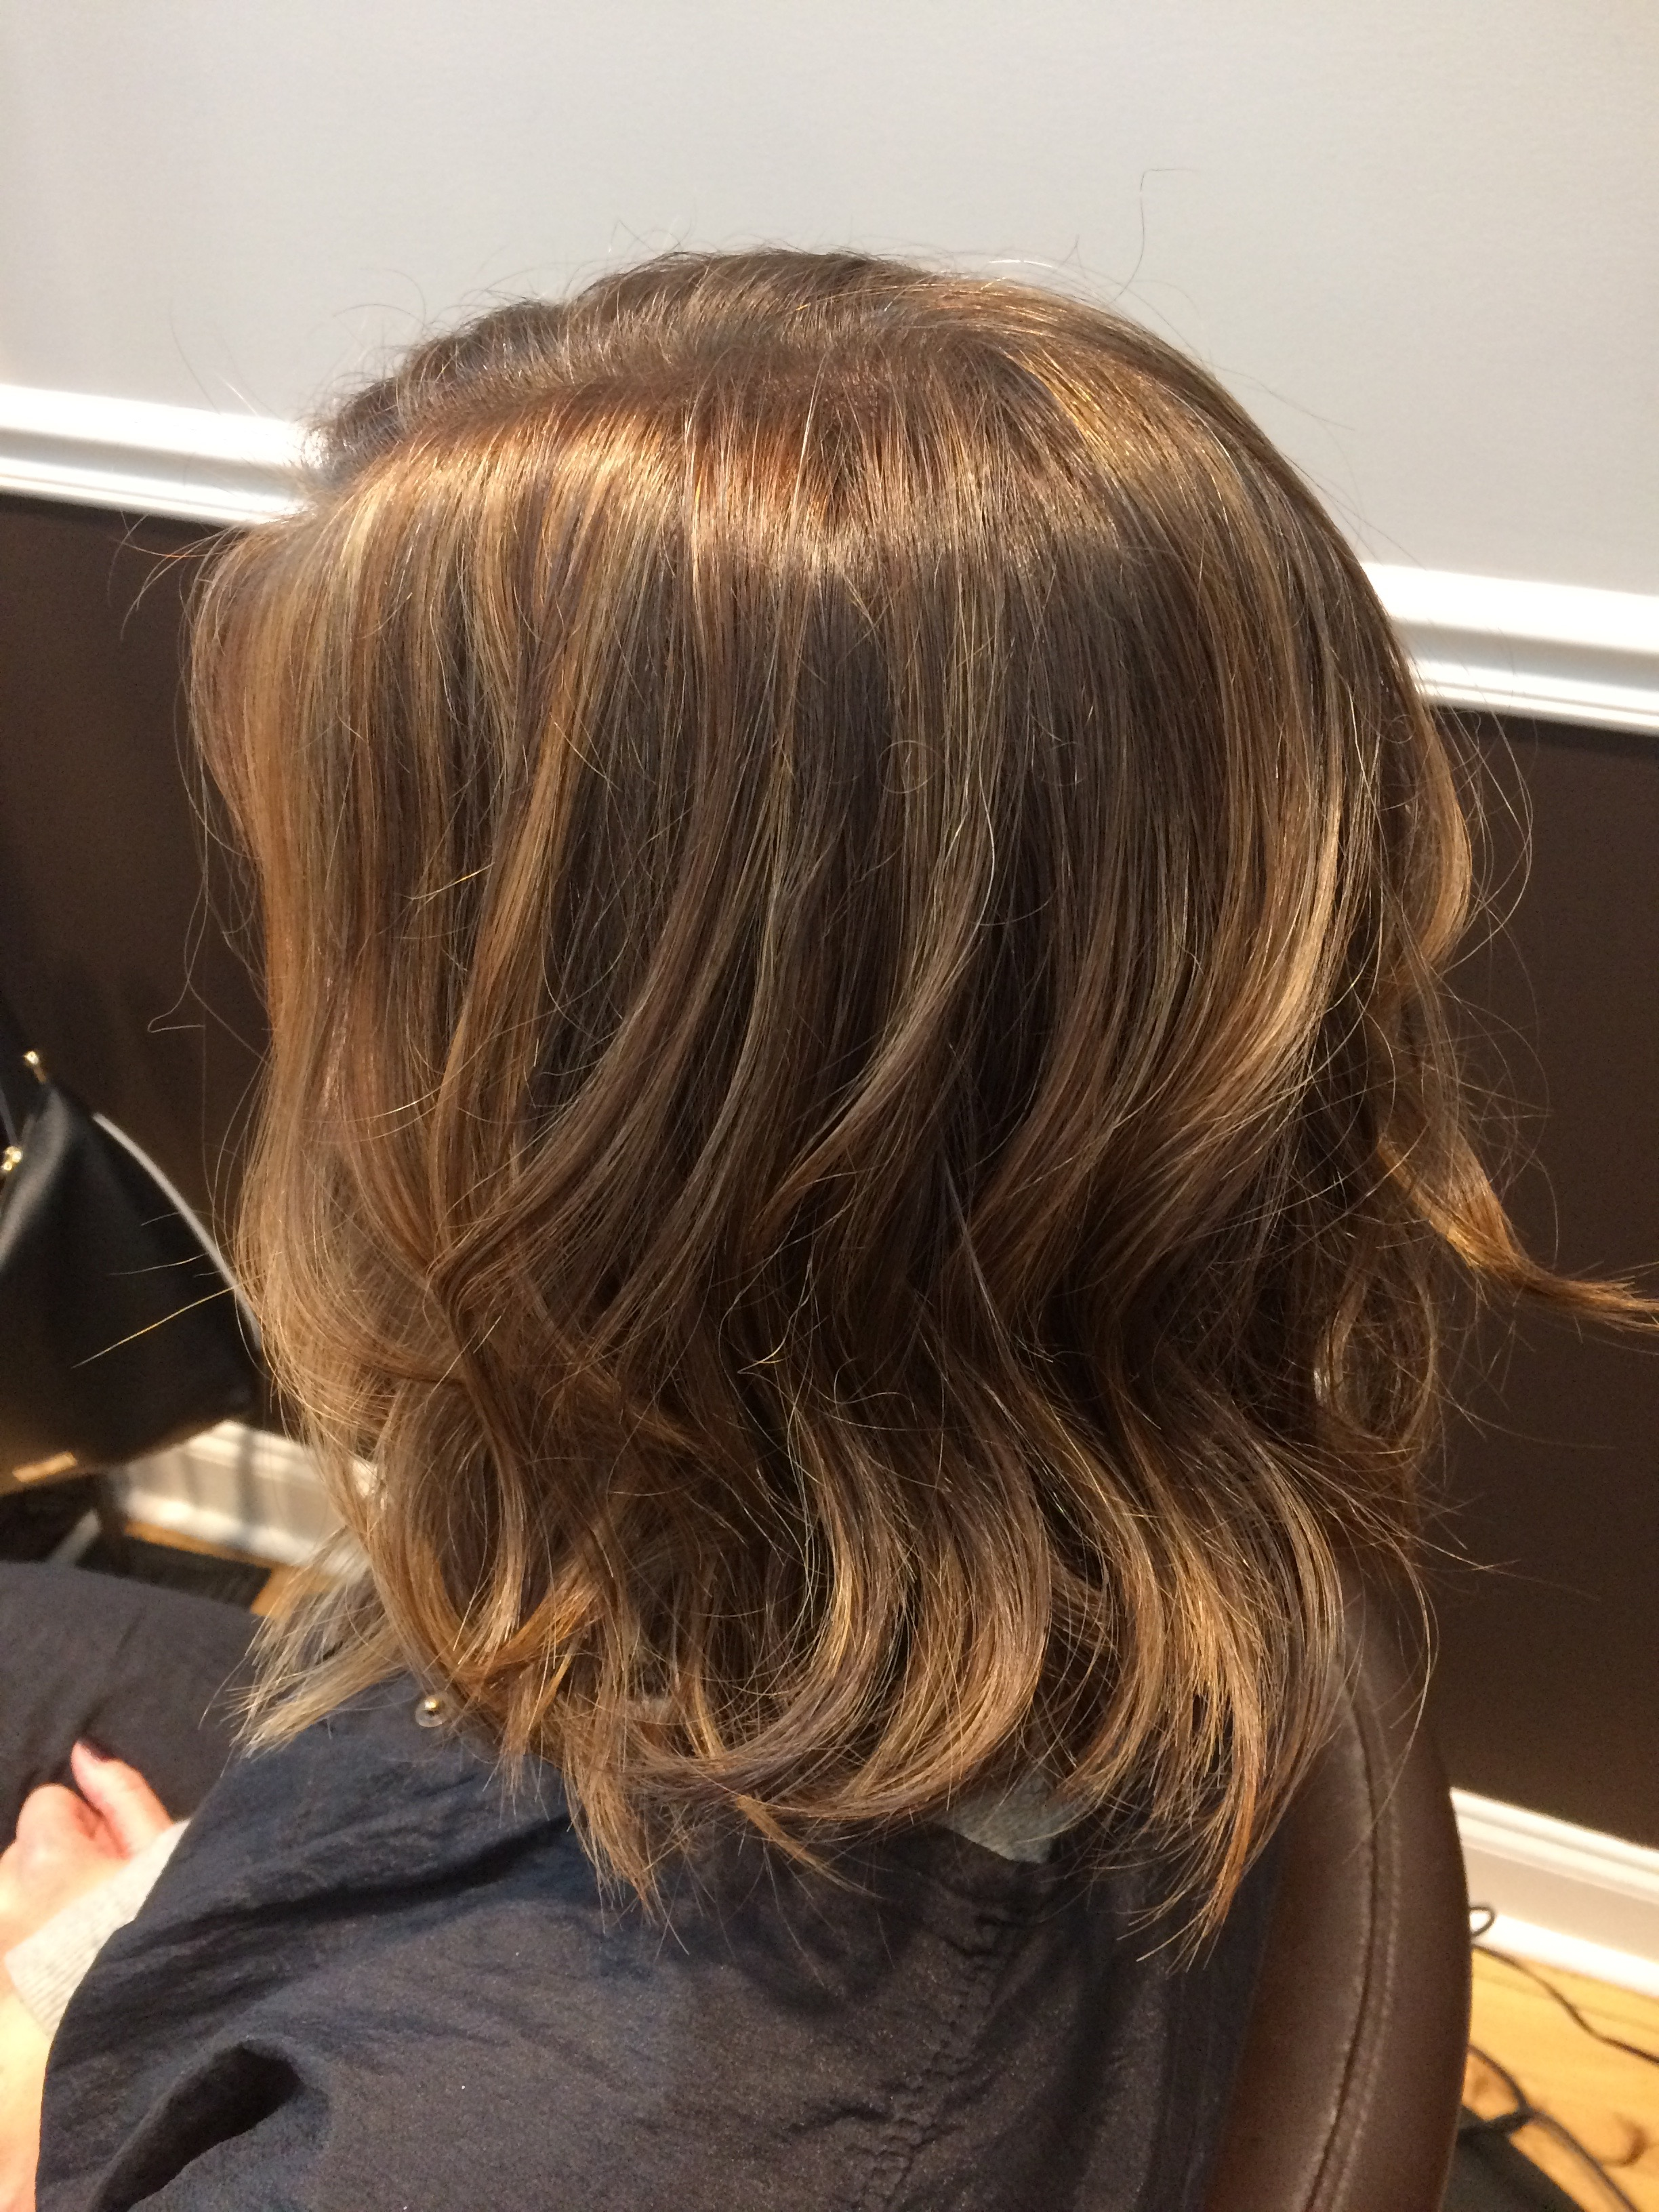 Cut & Highlights